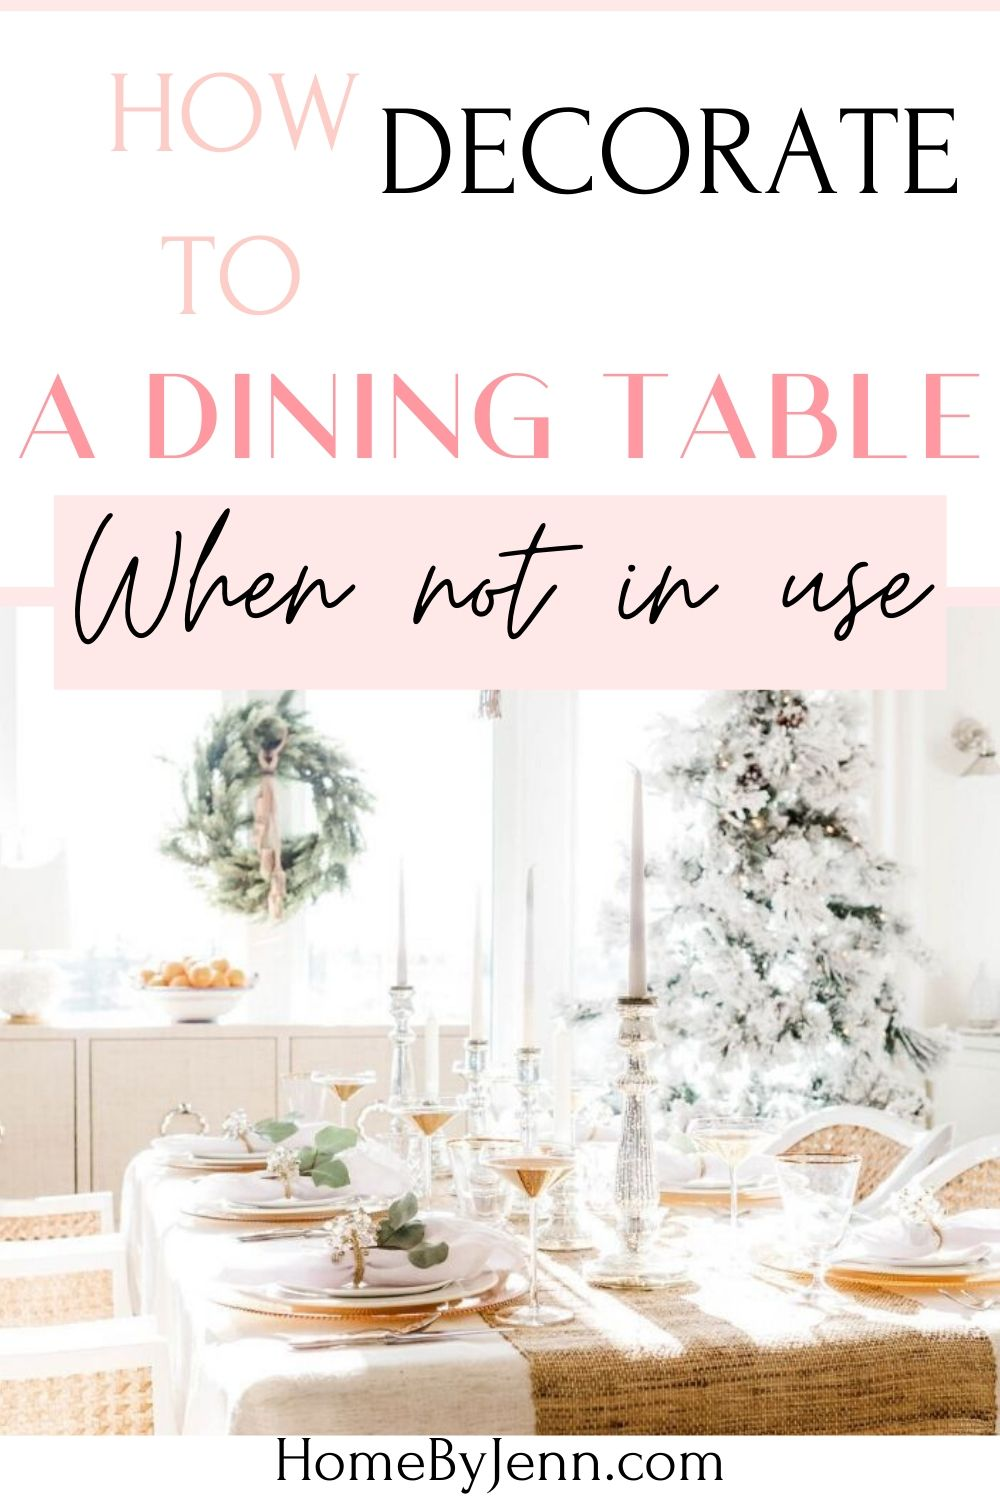 How To Decorate Dining Table When Not In Use Dining Table Decor Dining Dining Table